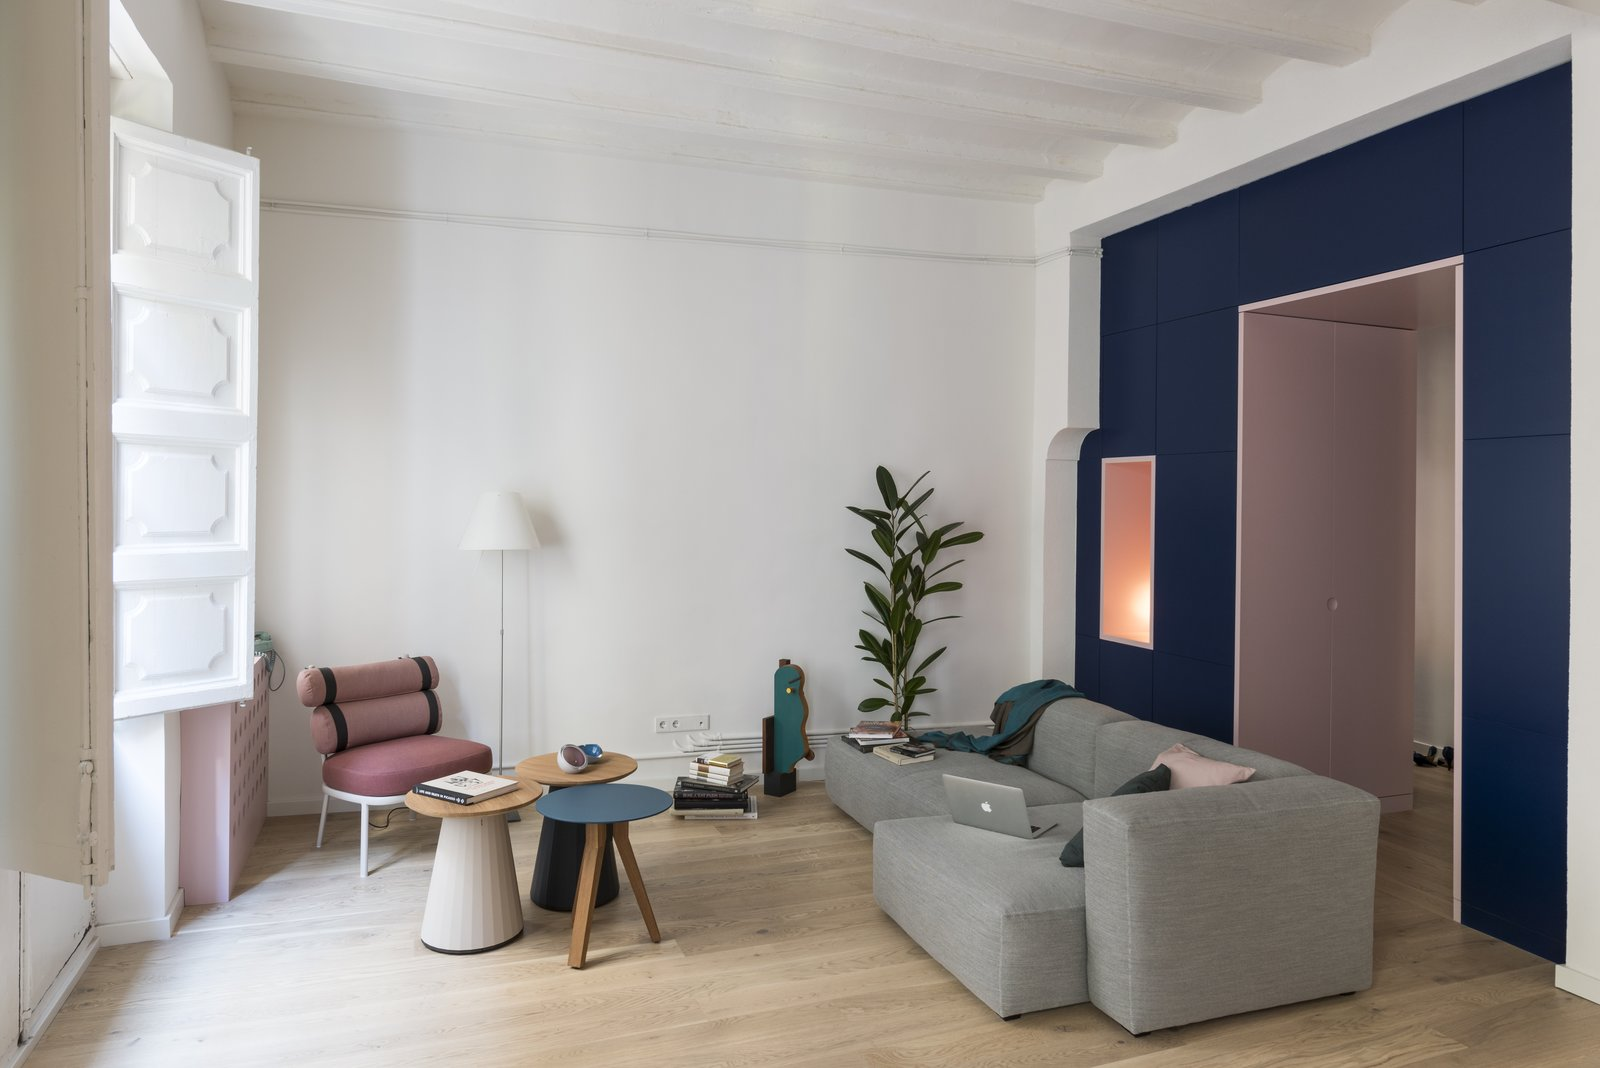 Before and After: An Ancient Barcelona Apartment Gets a Colorful, Chic Makeover